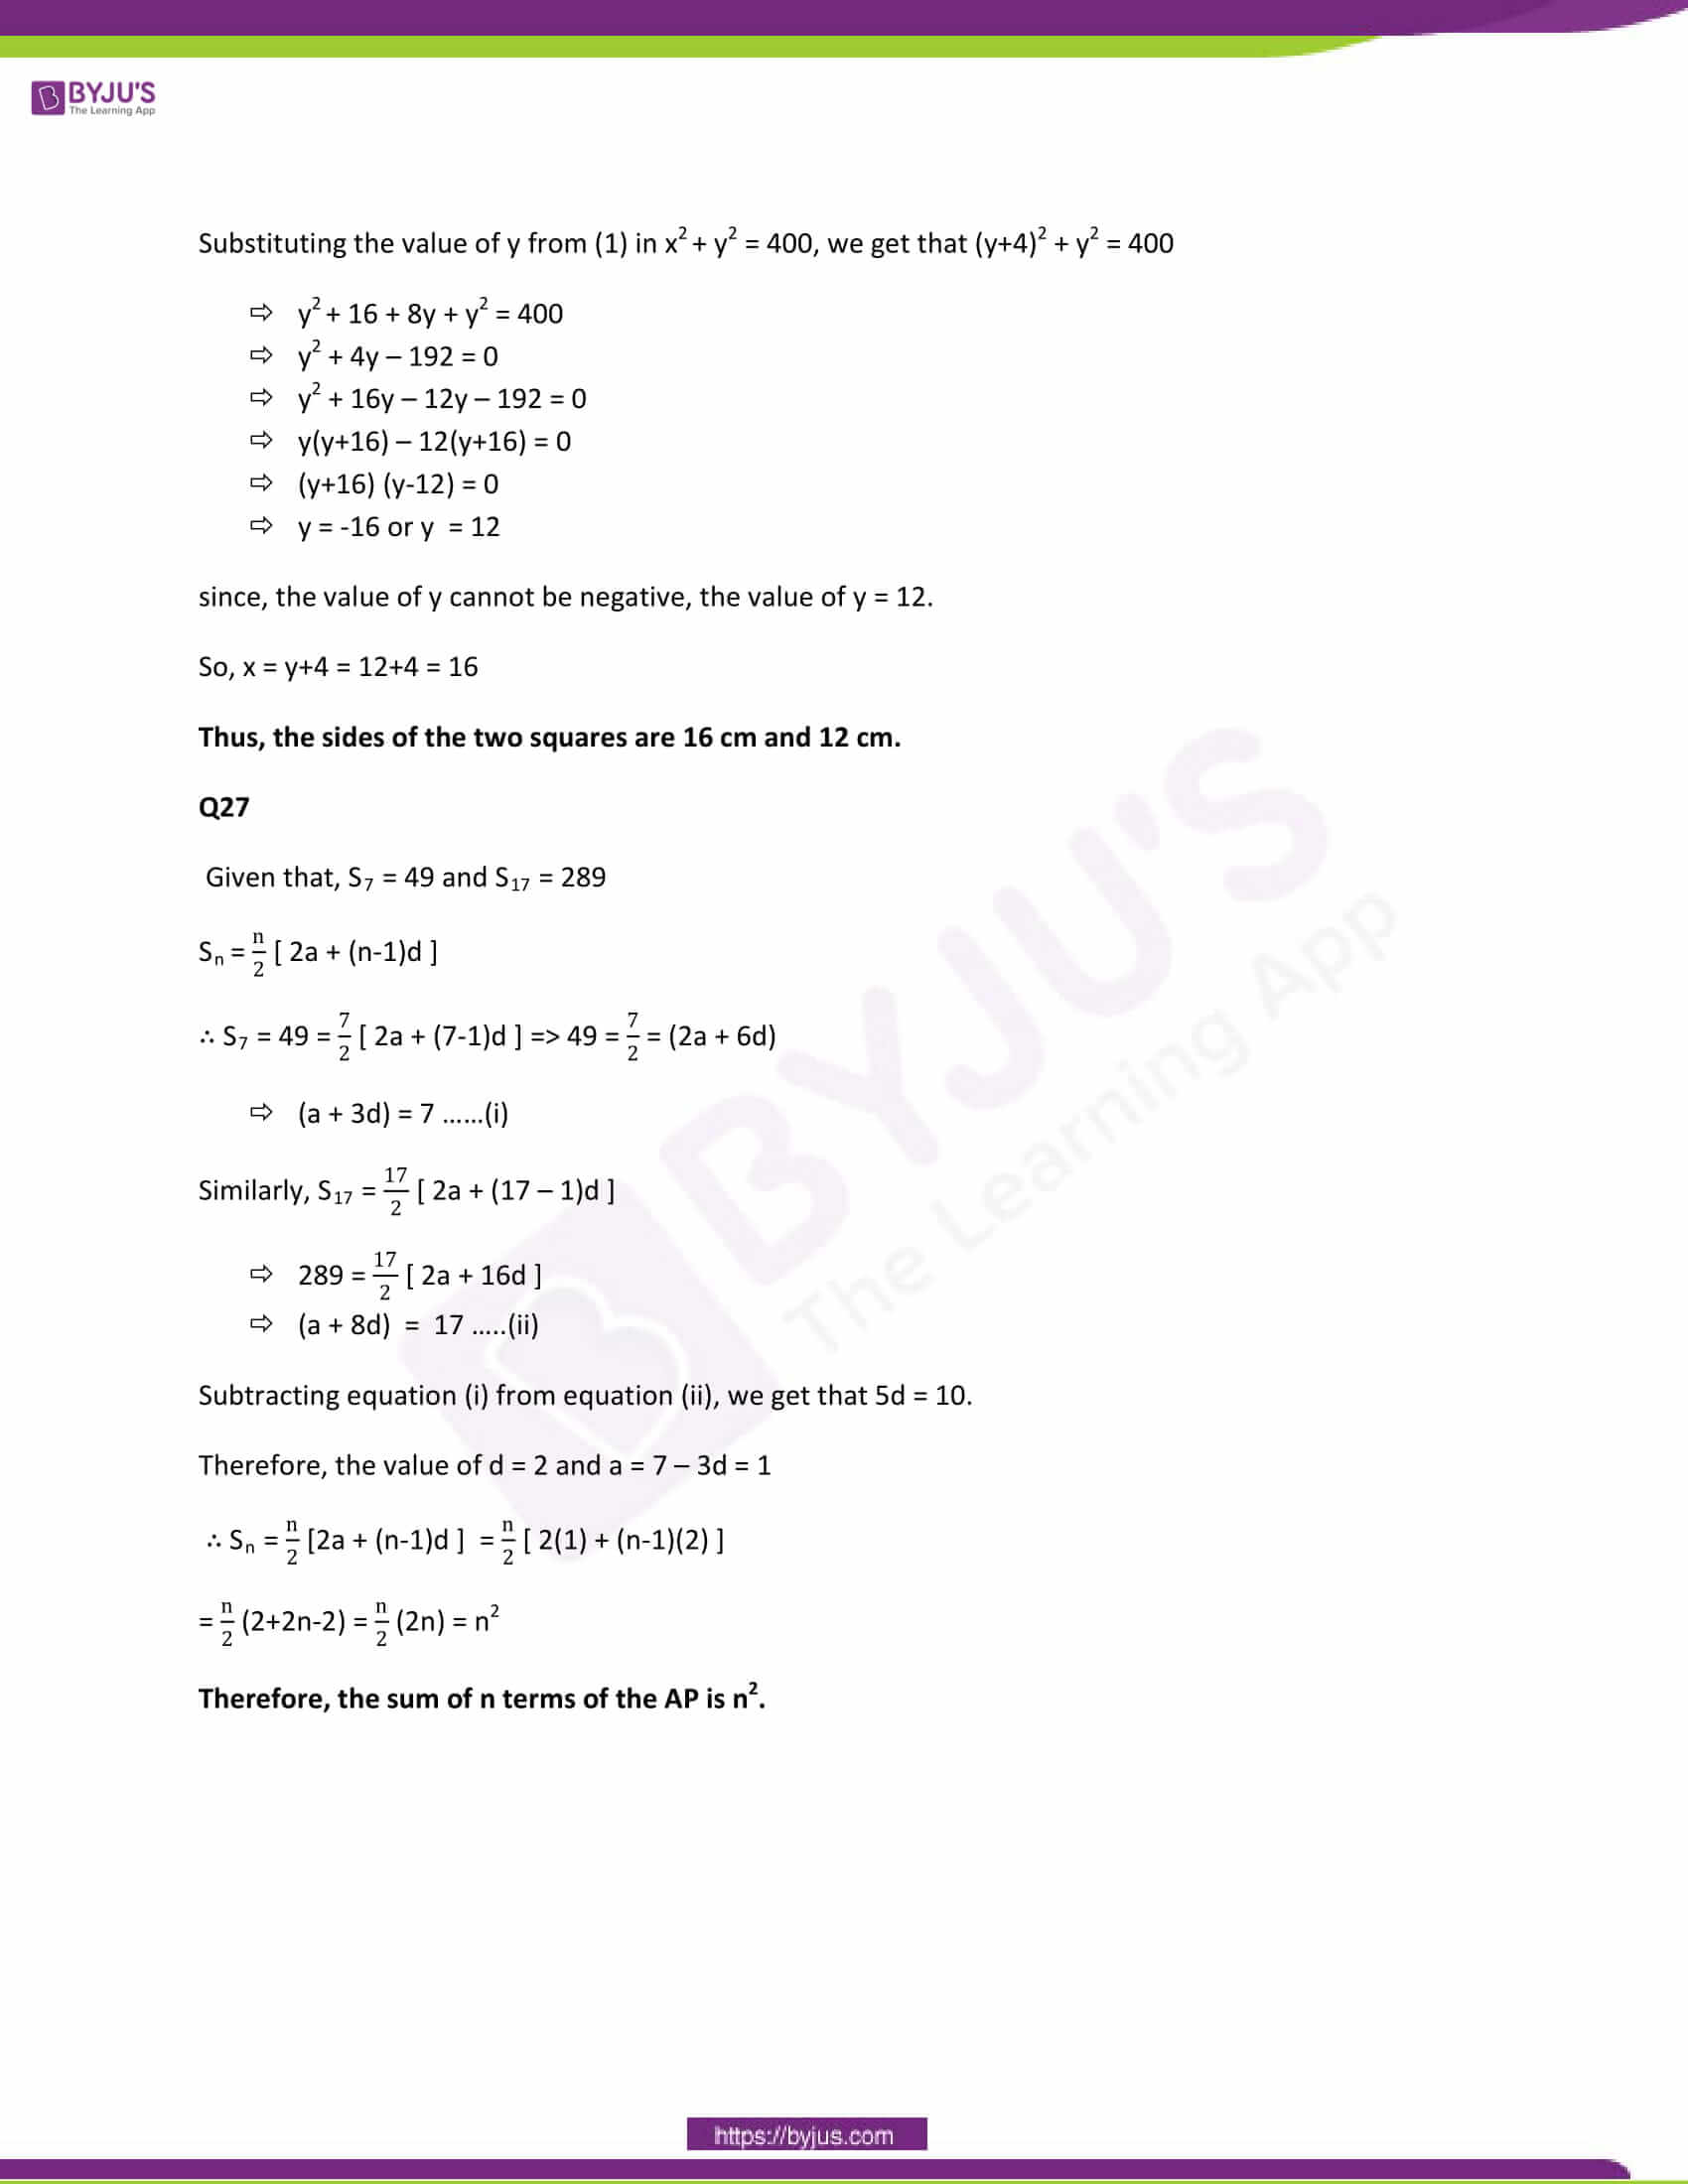 CBSE Class 10 Maths Papers Solution 2013 15